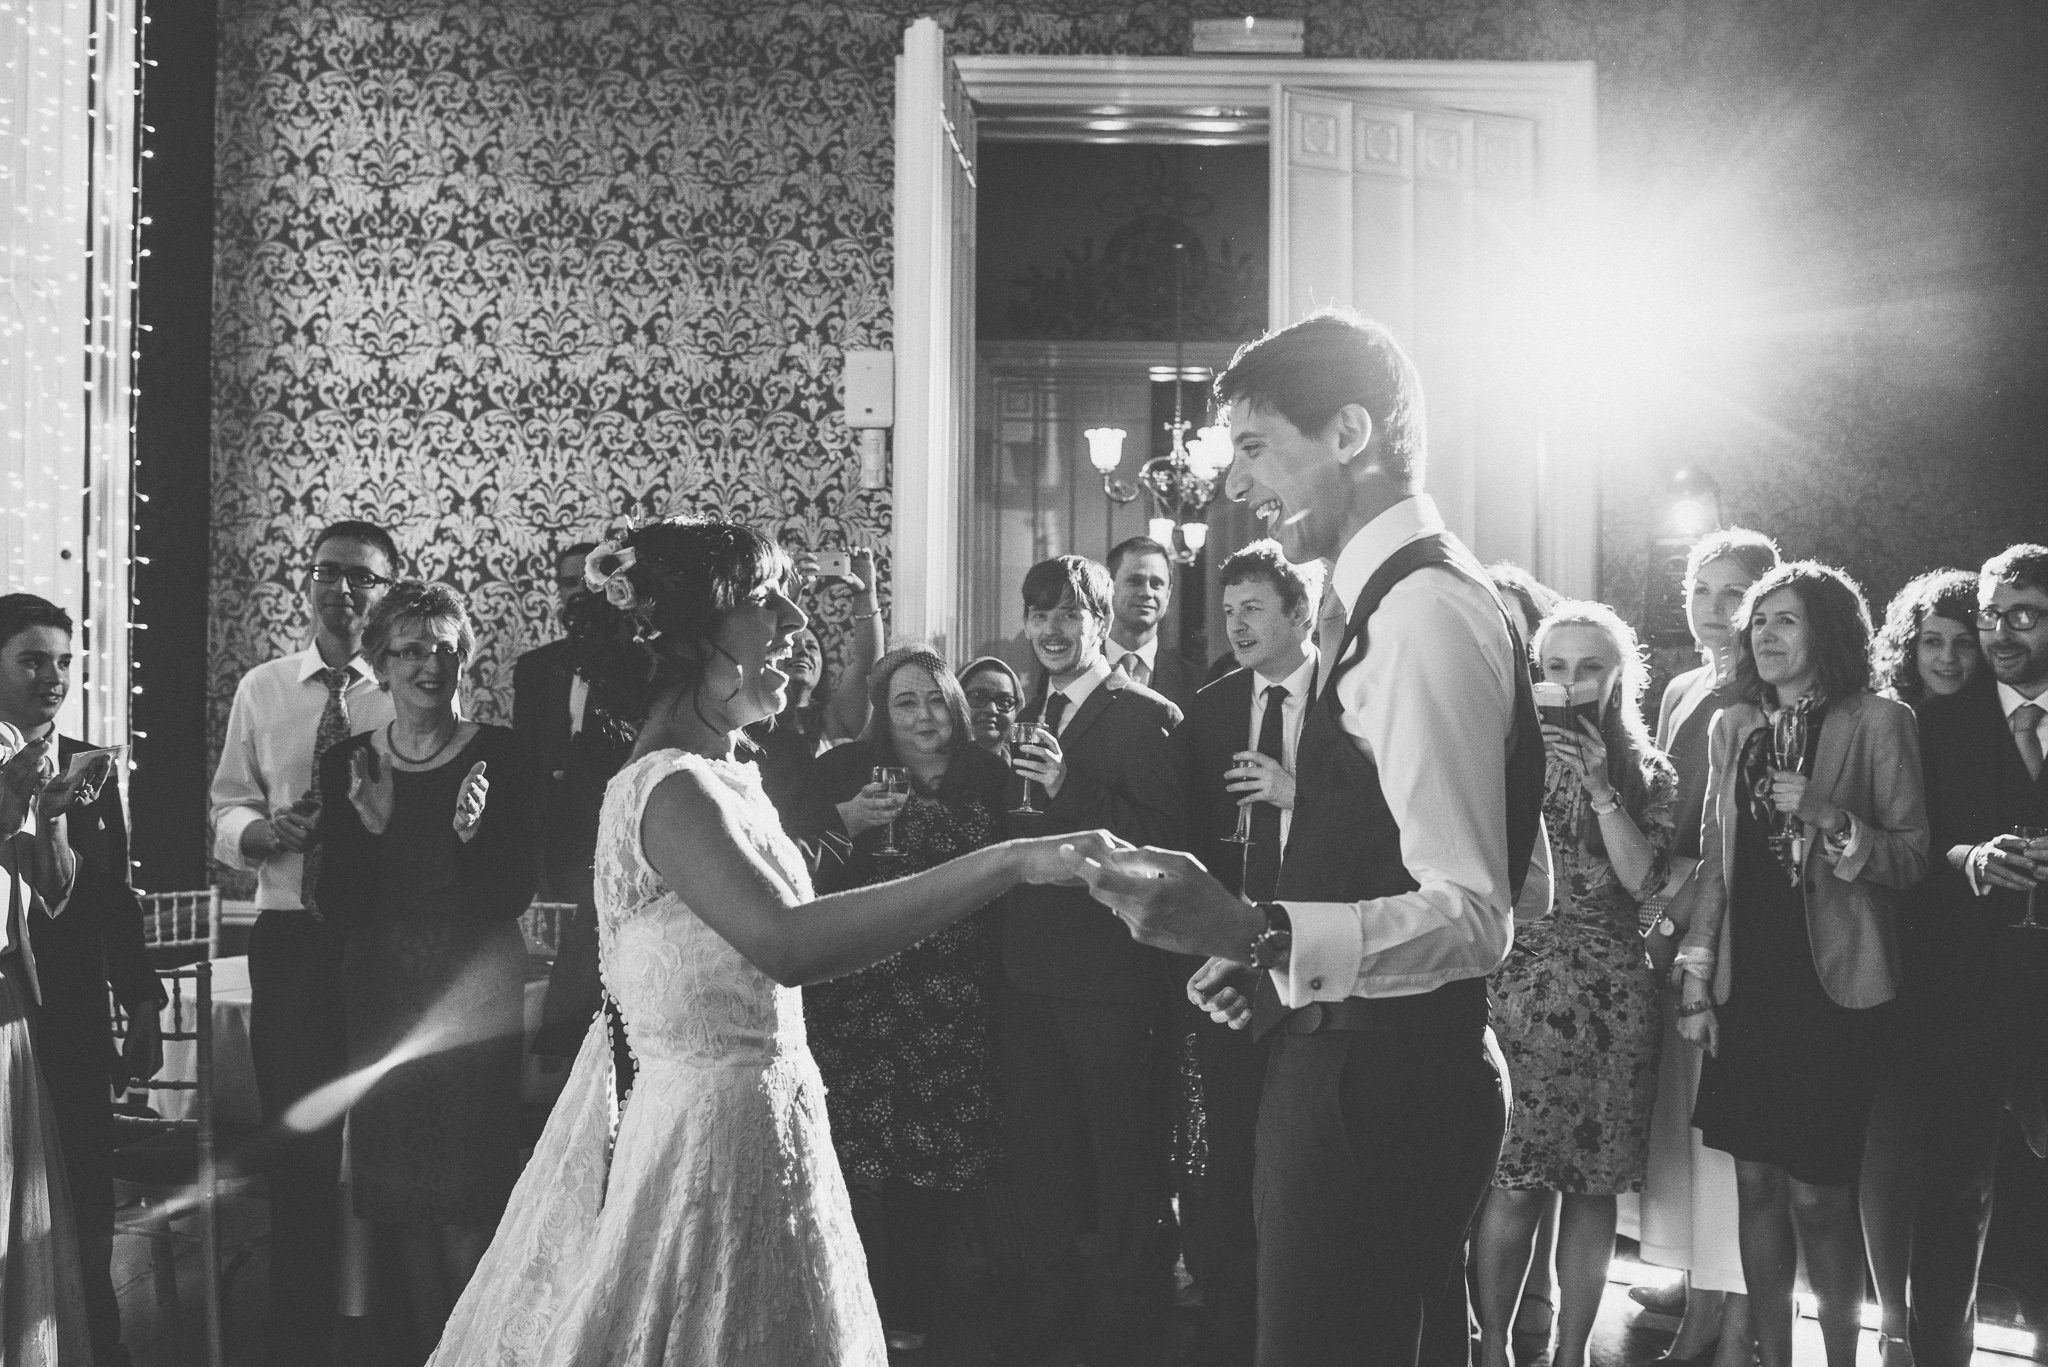 A black and white shot taken during the couple's first dance, both are shown bursting out laughing as they take to the floor